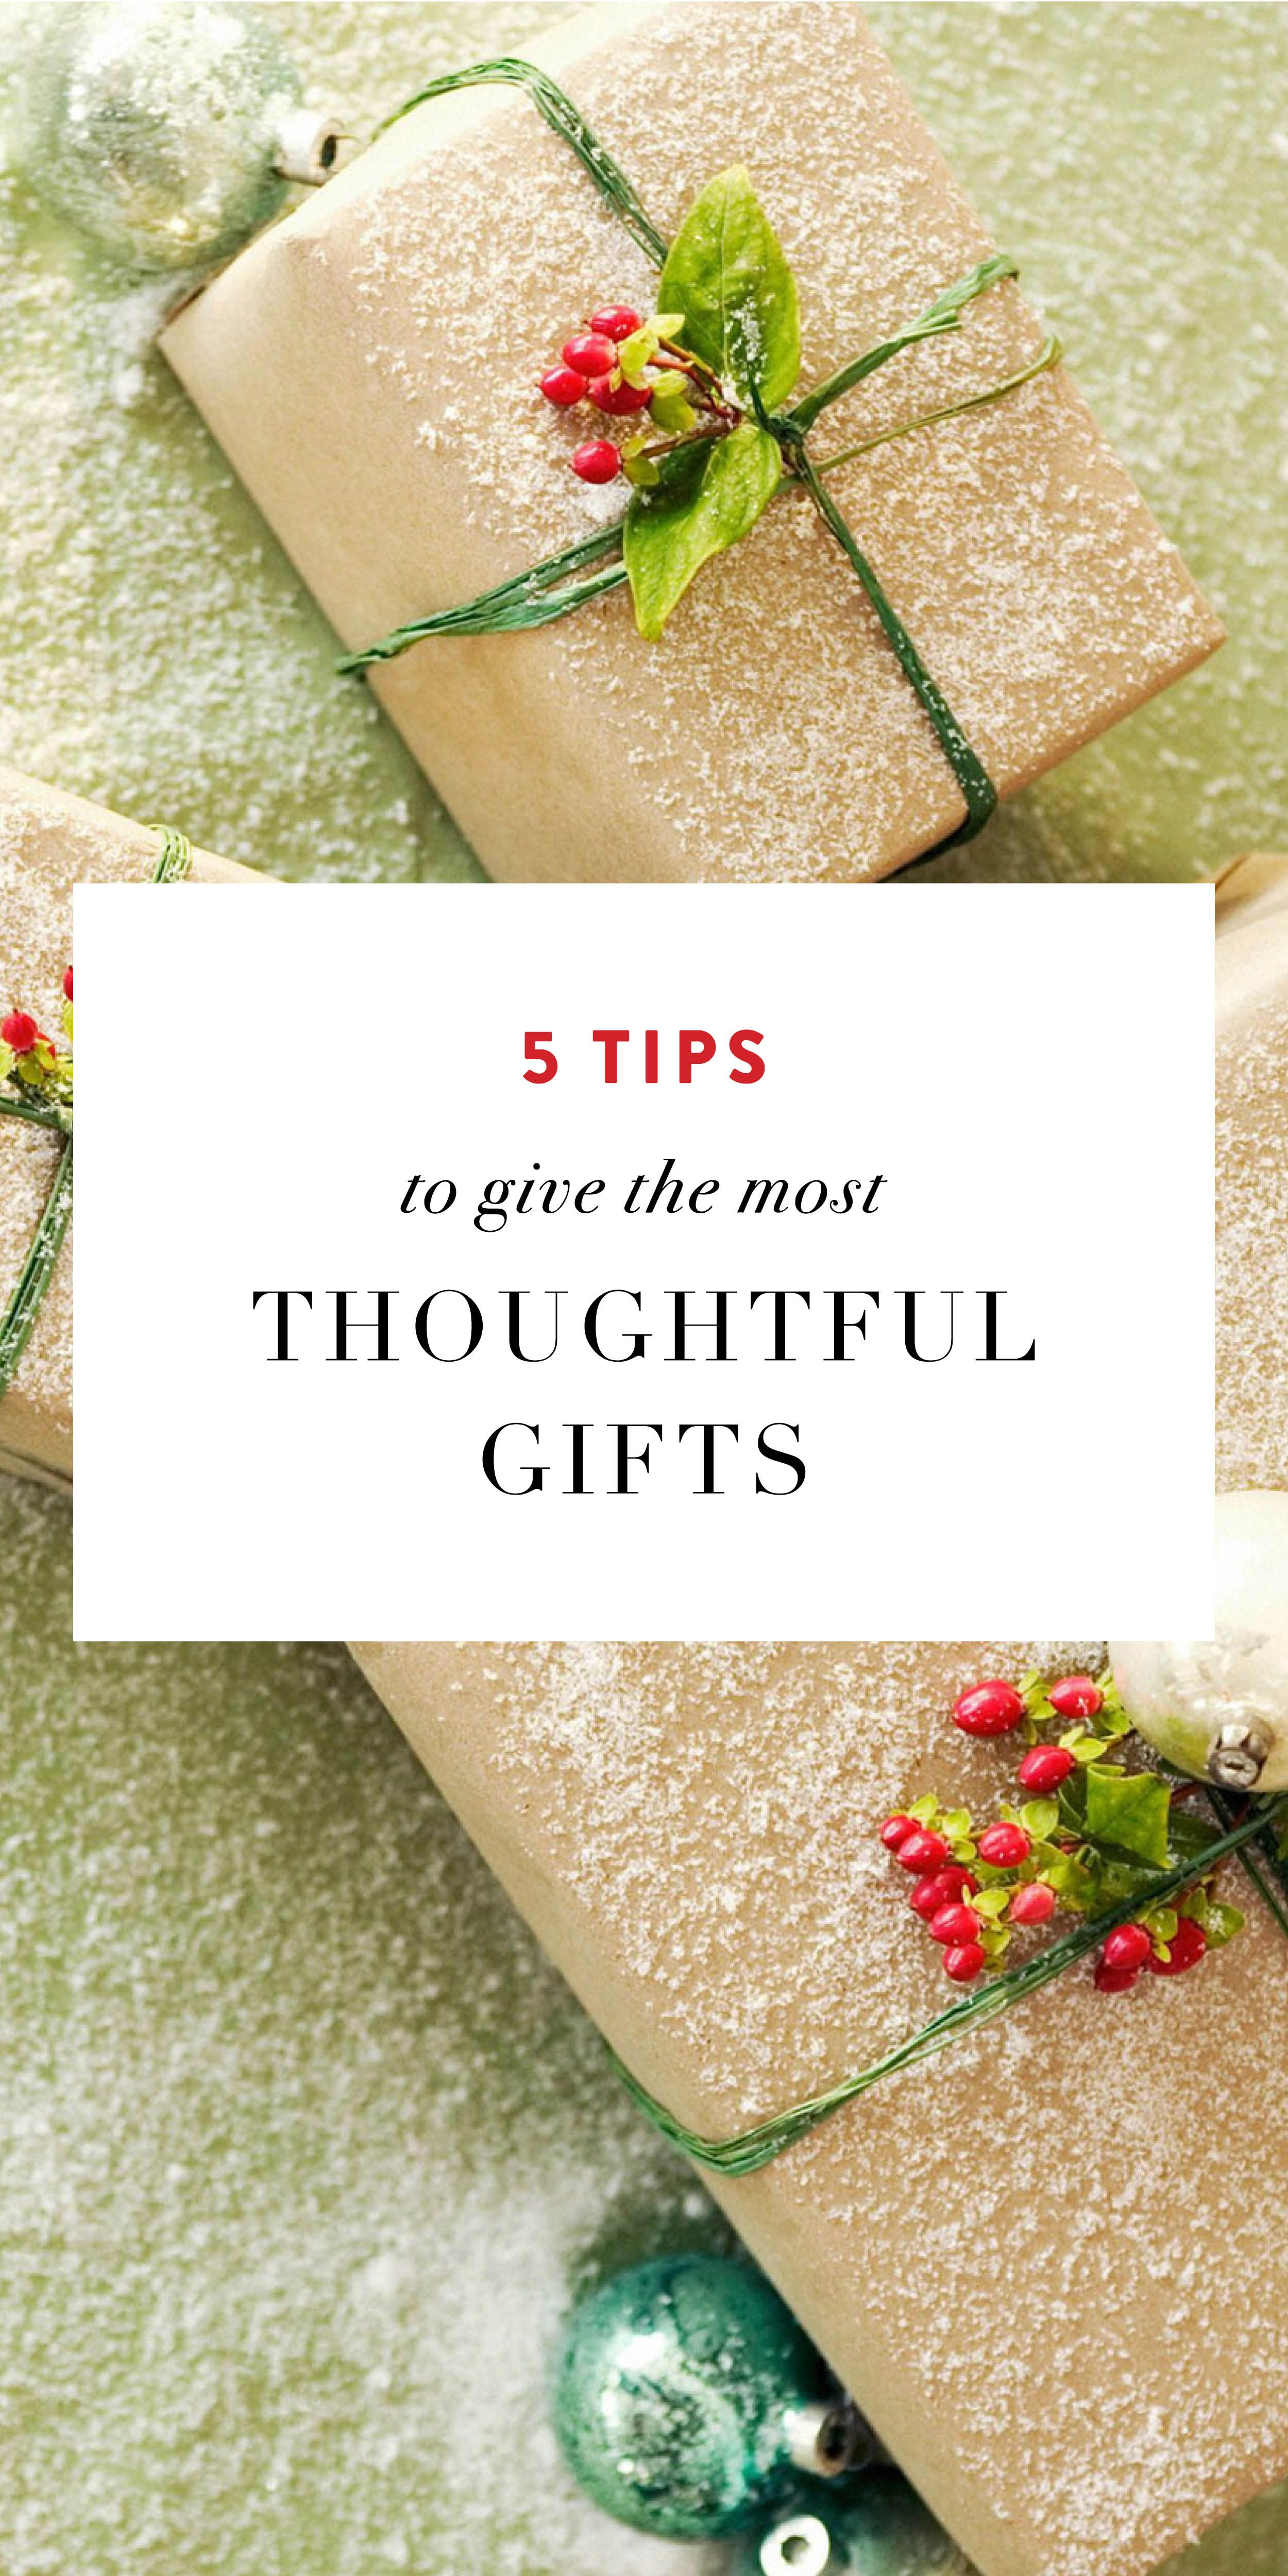 5 Tips to Give the Most Thoughtful Gifts   Helpful Tips   Pinterest ...